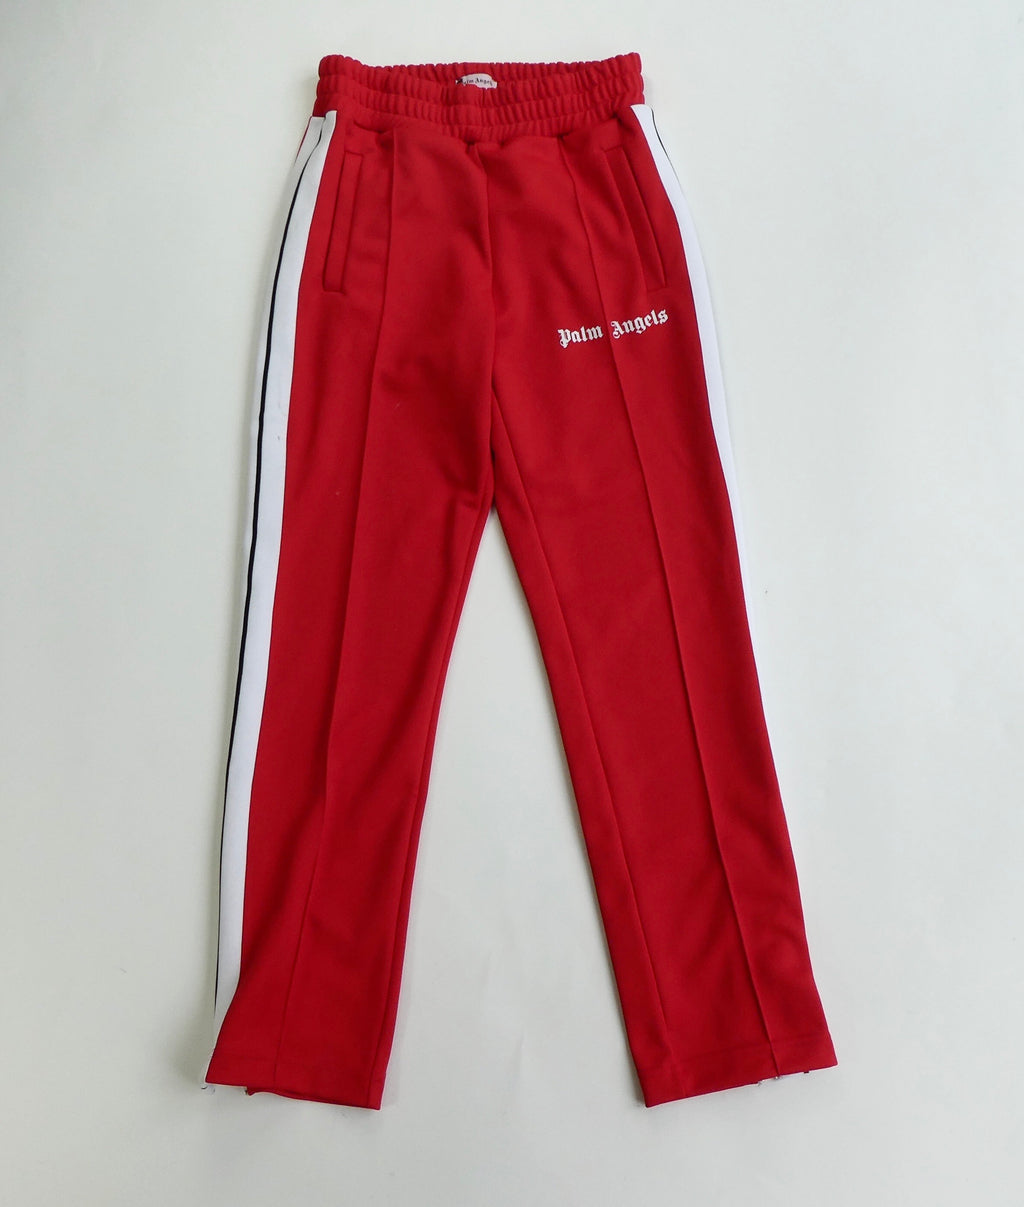 Palm Angels Track Pants - Small